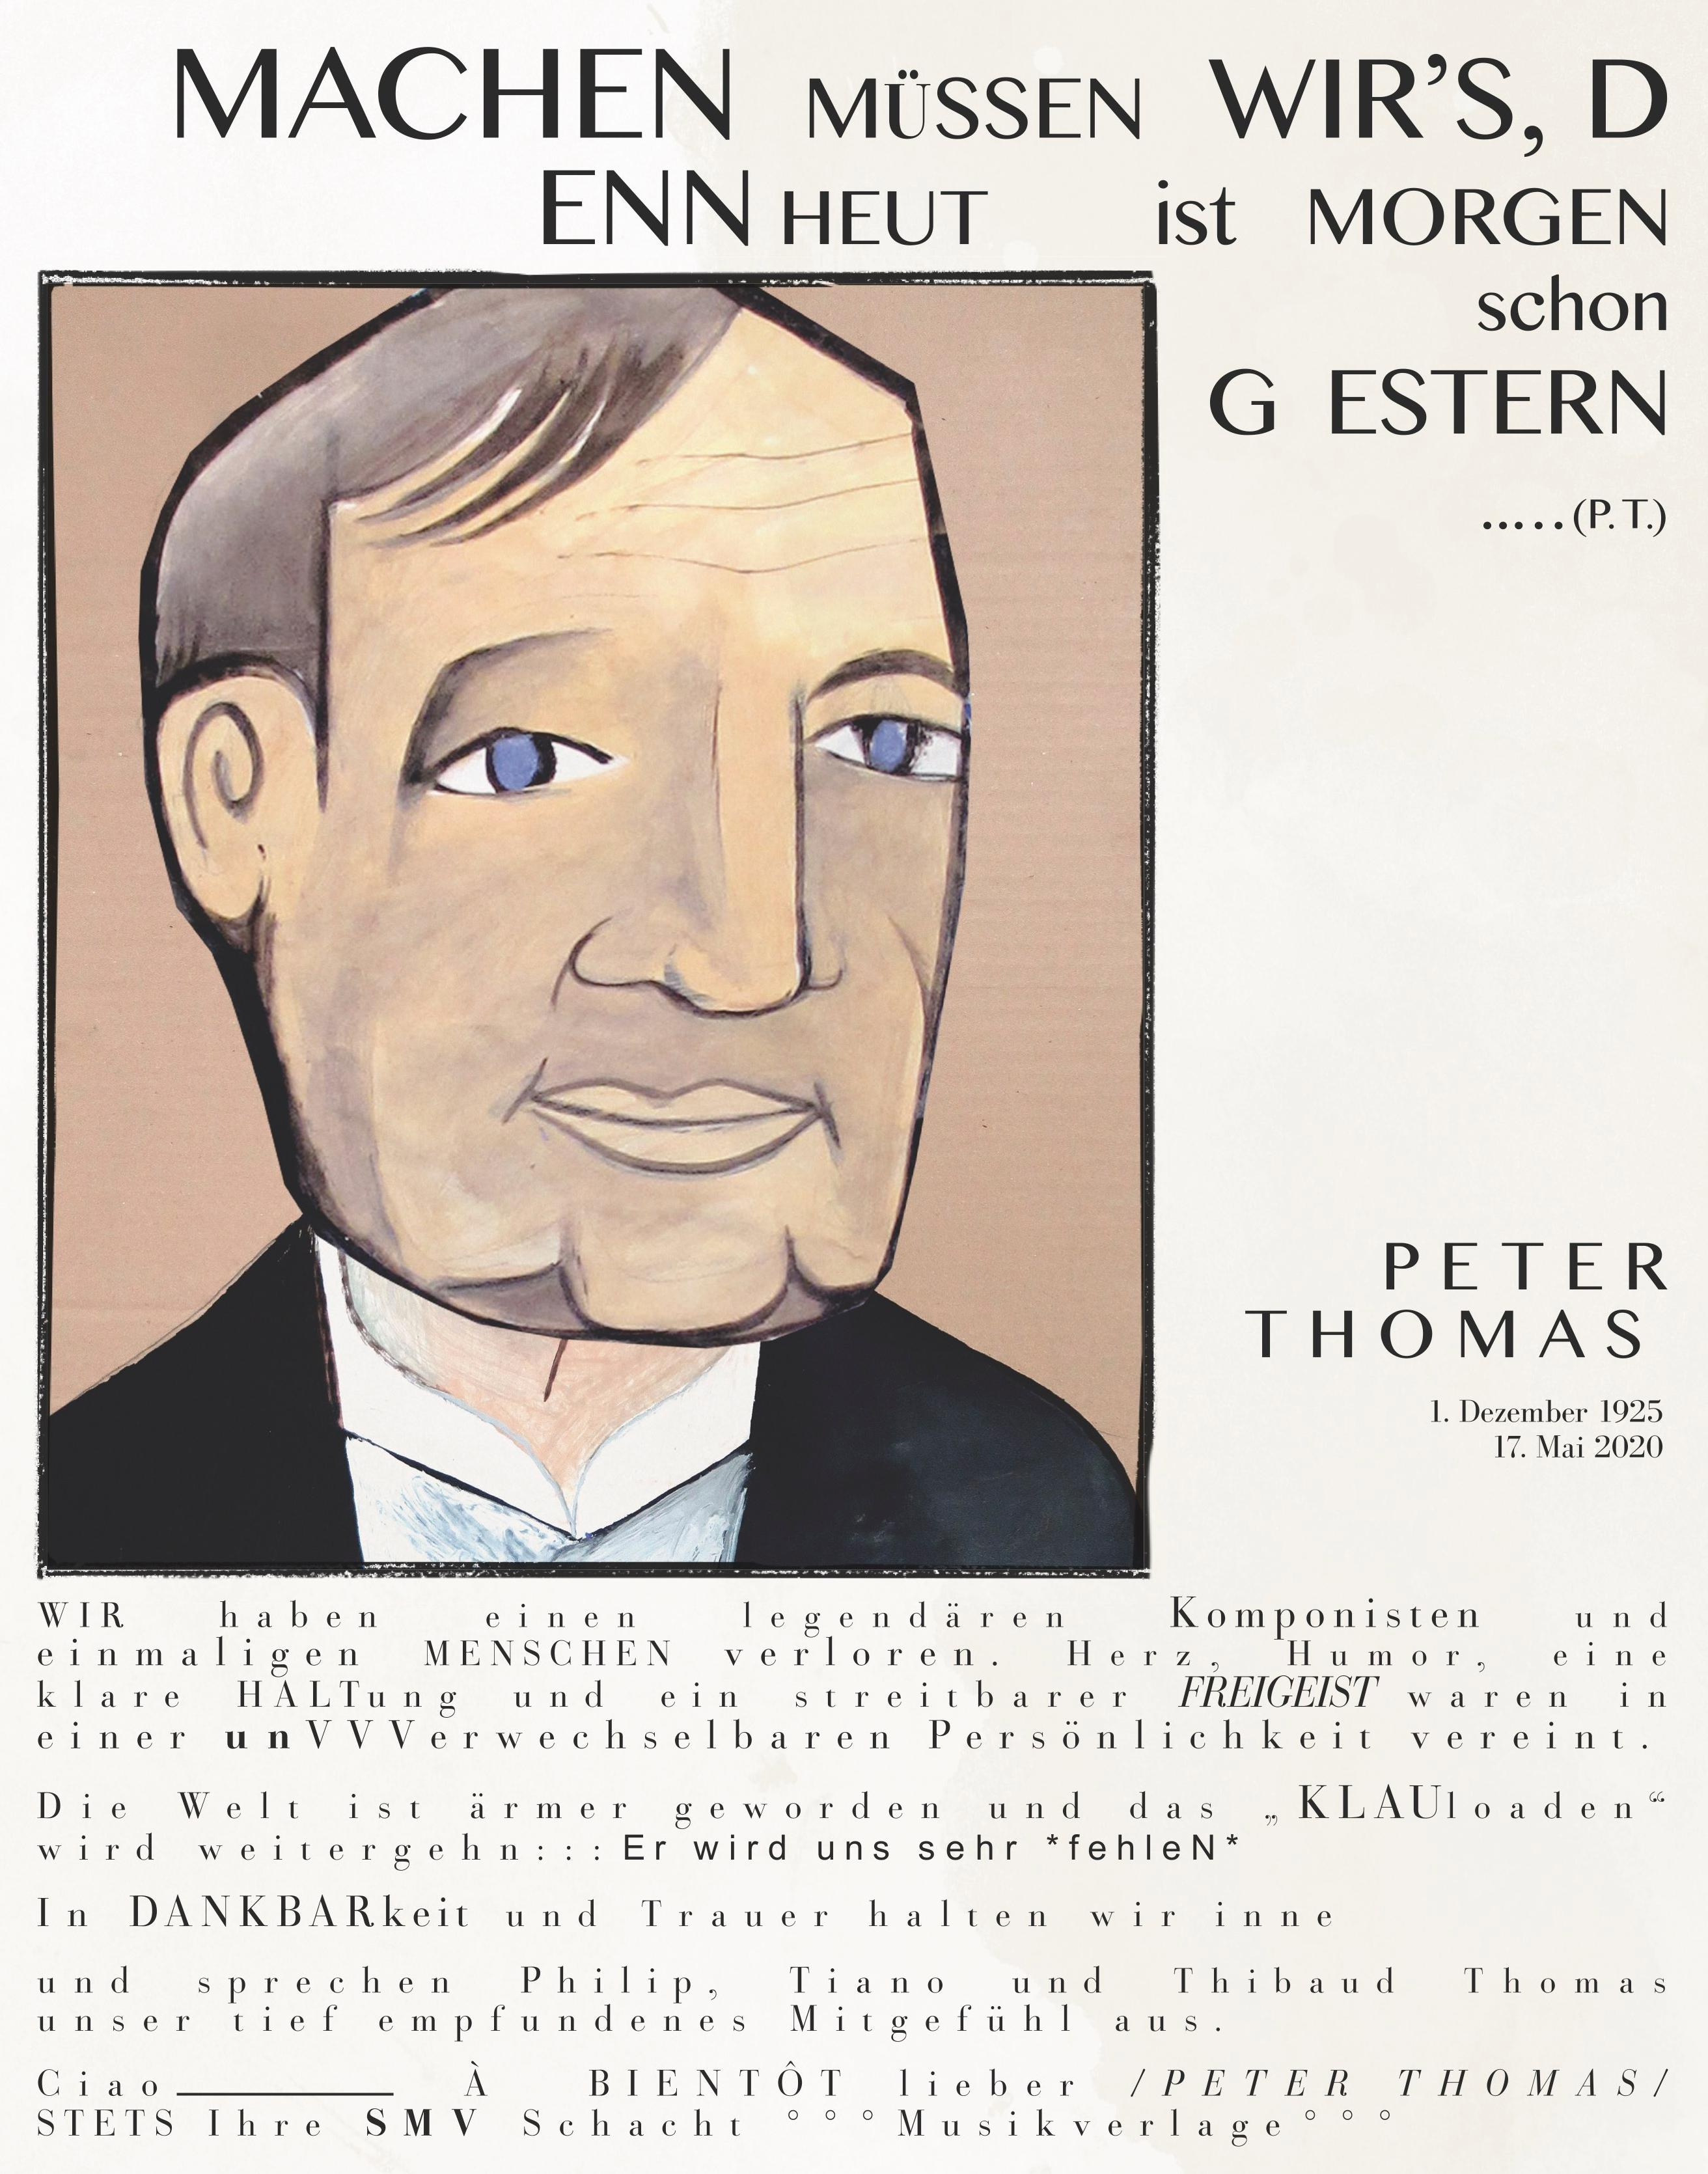 We have lost a legendary composer and unique person - Peter Thomas (1. Dezember 1925 Breslau † 17. Mai 2020 Lugano)